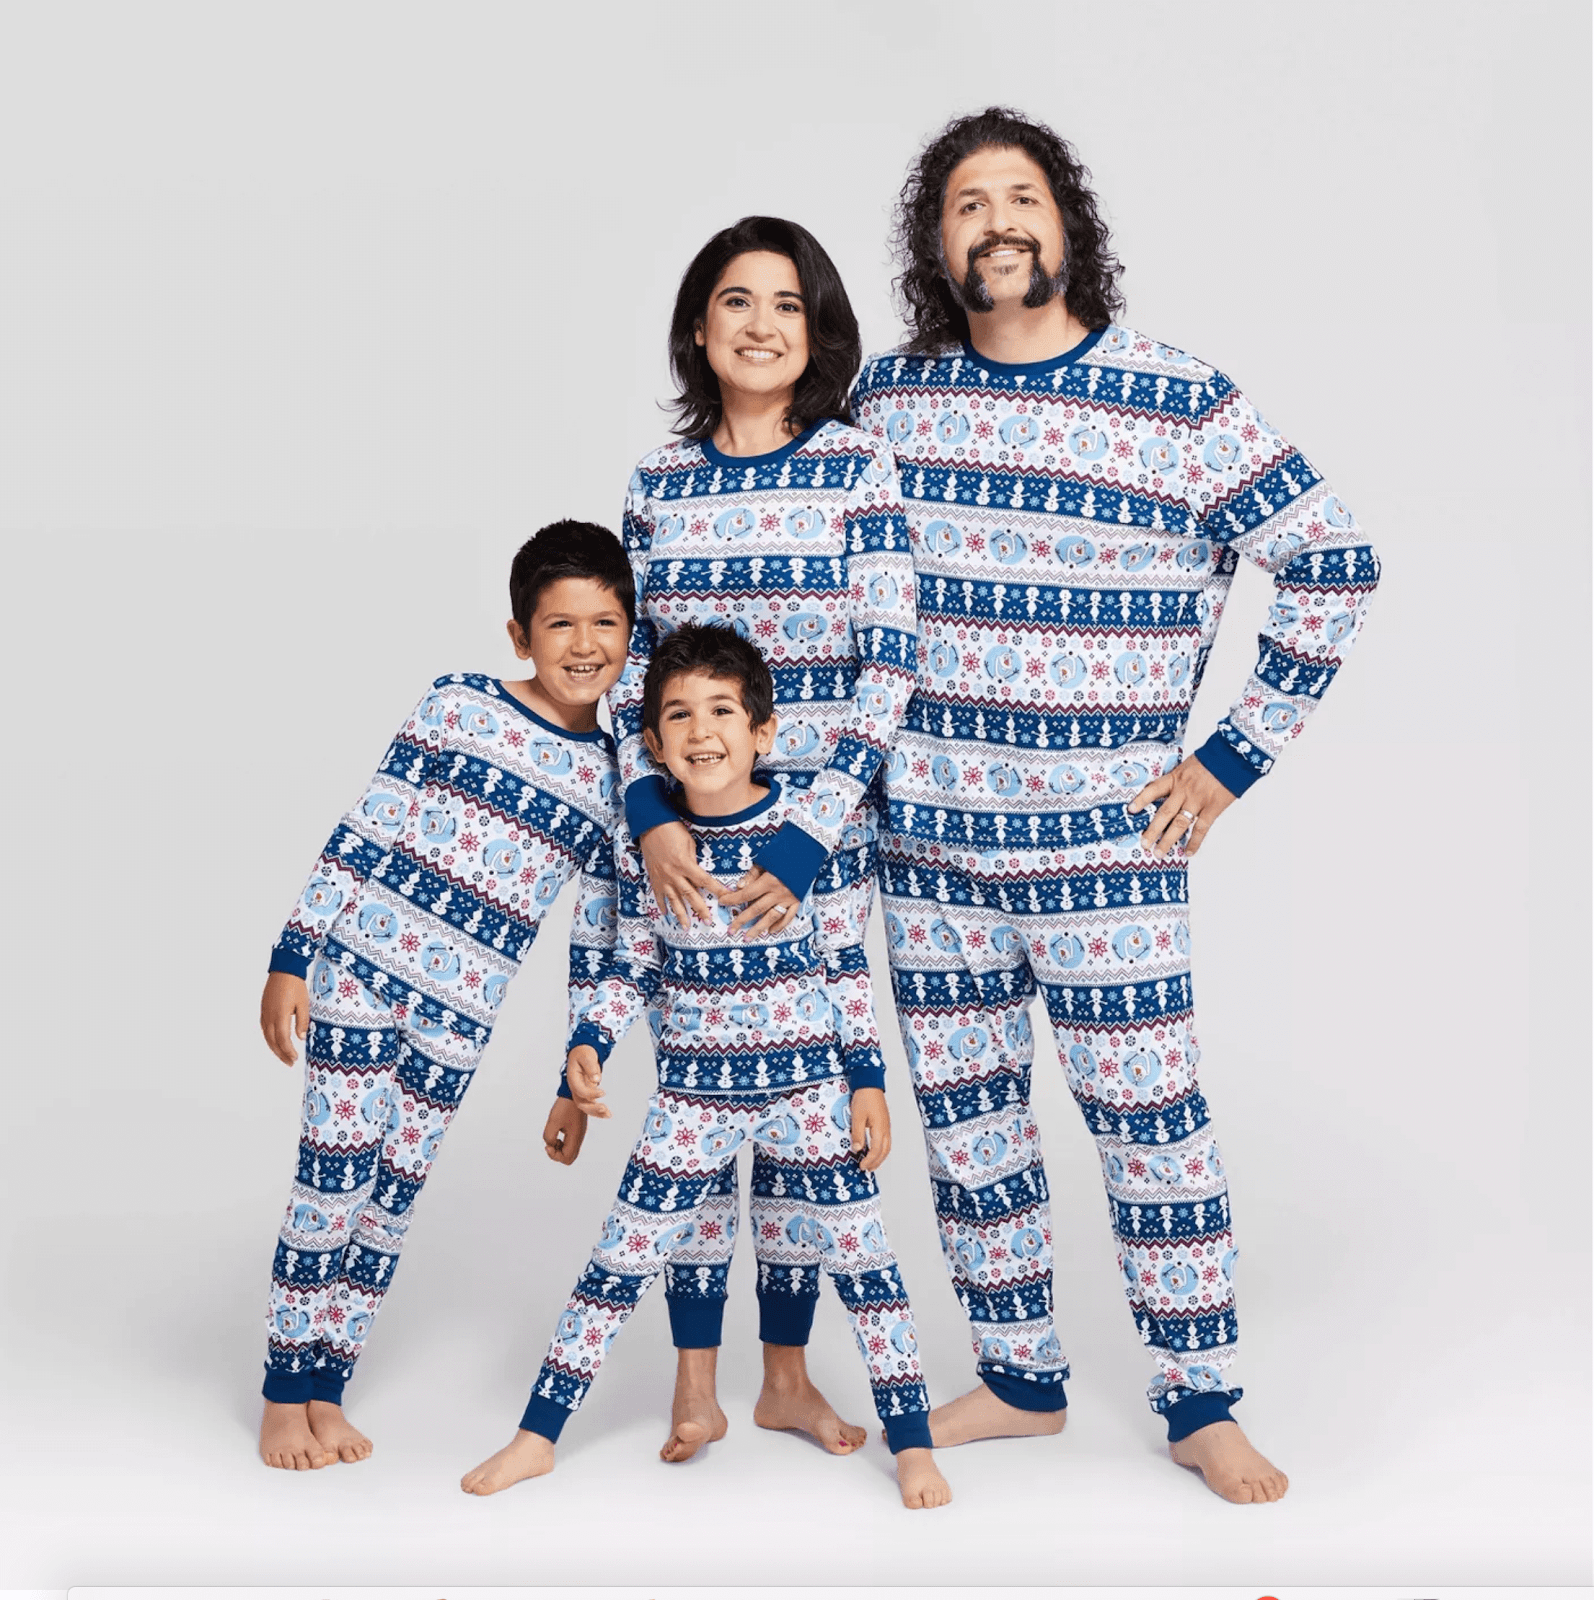 A family in matching pajamas.